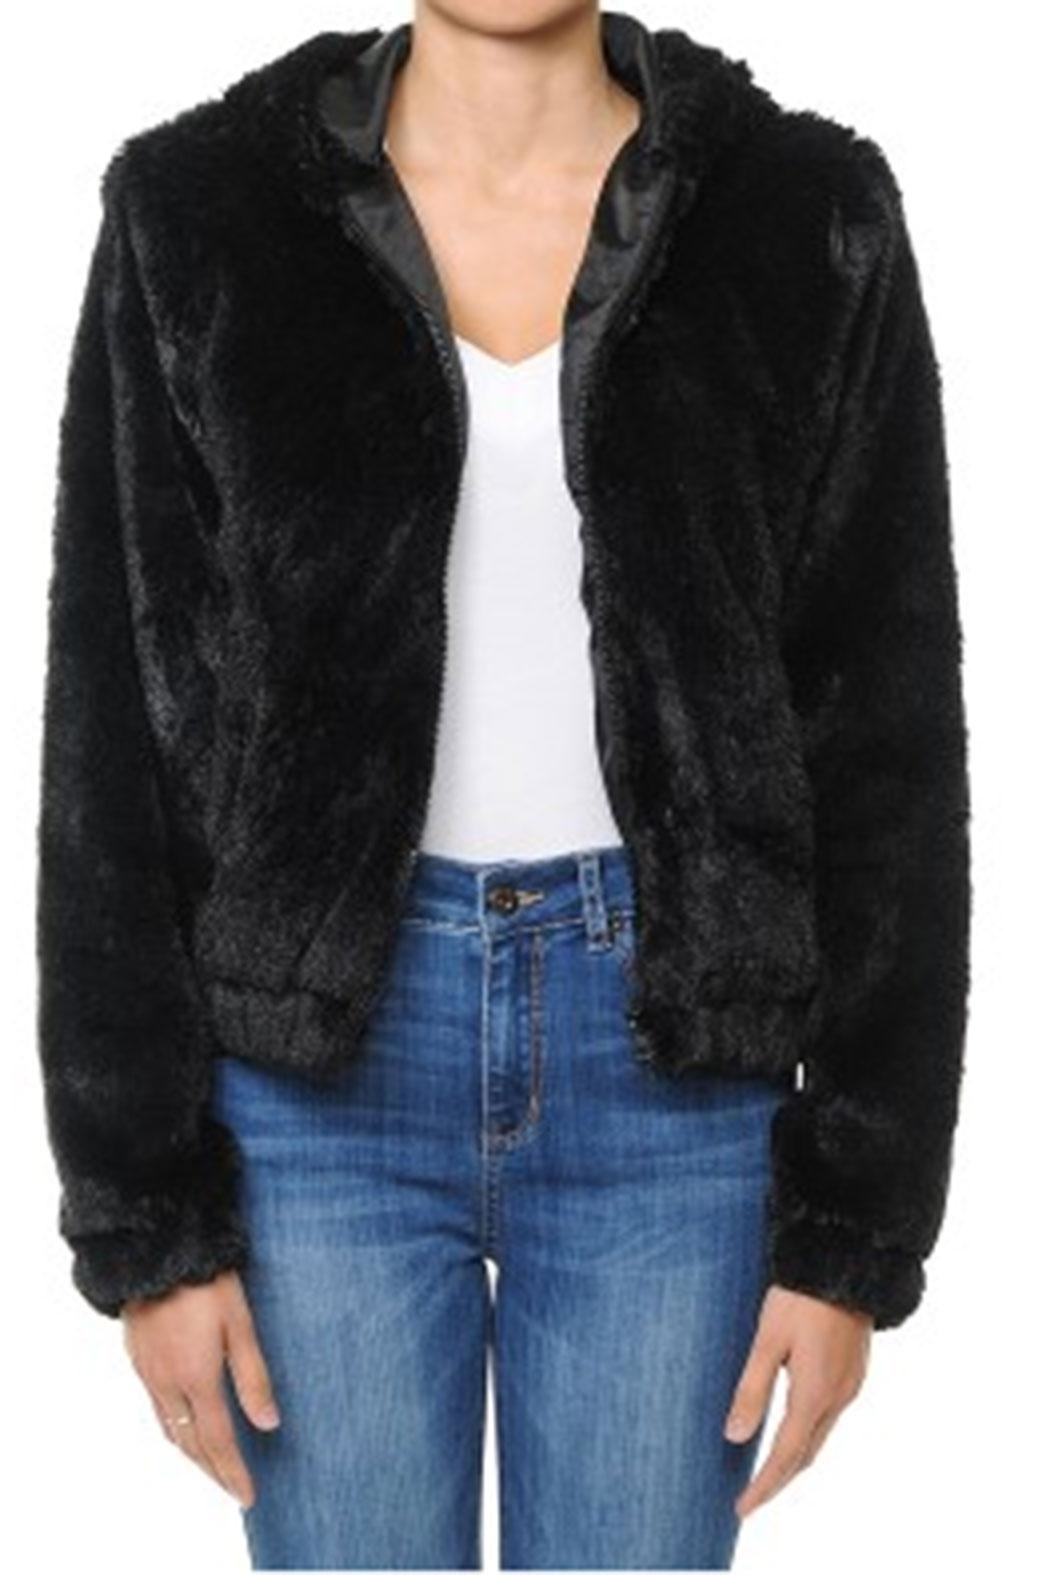 ambiance apparel Furry Zip-Up Hoodie - Main Image